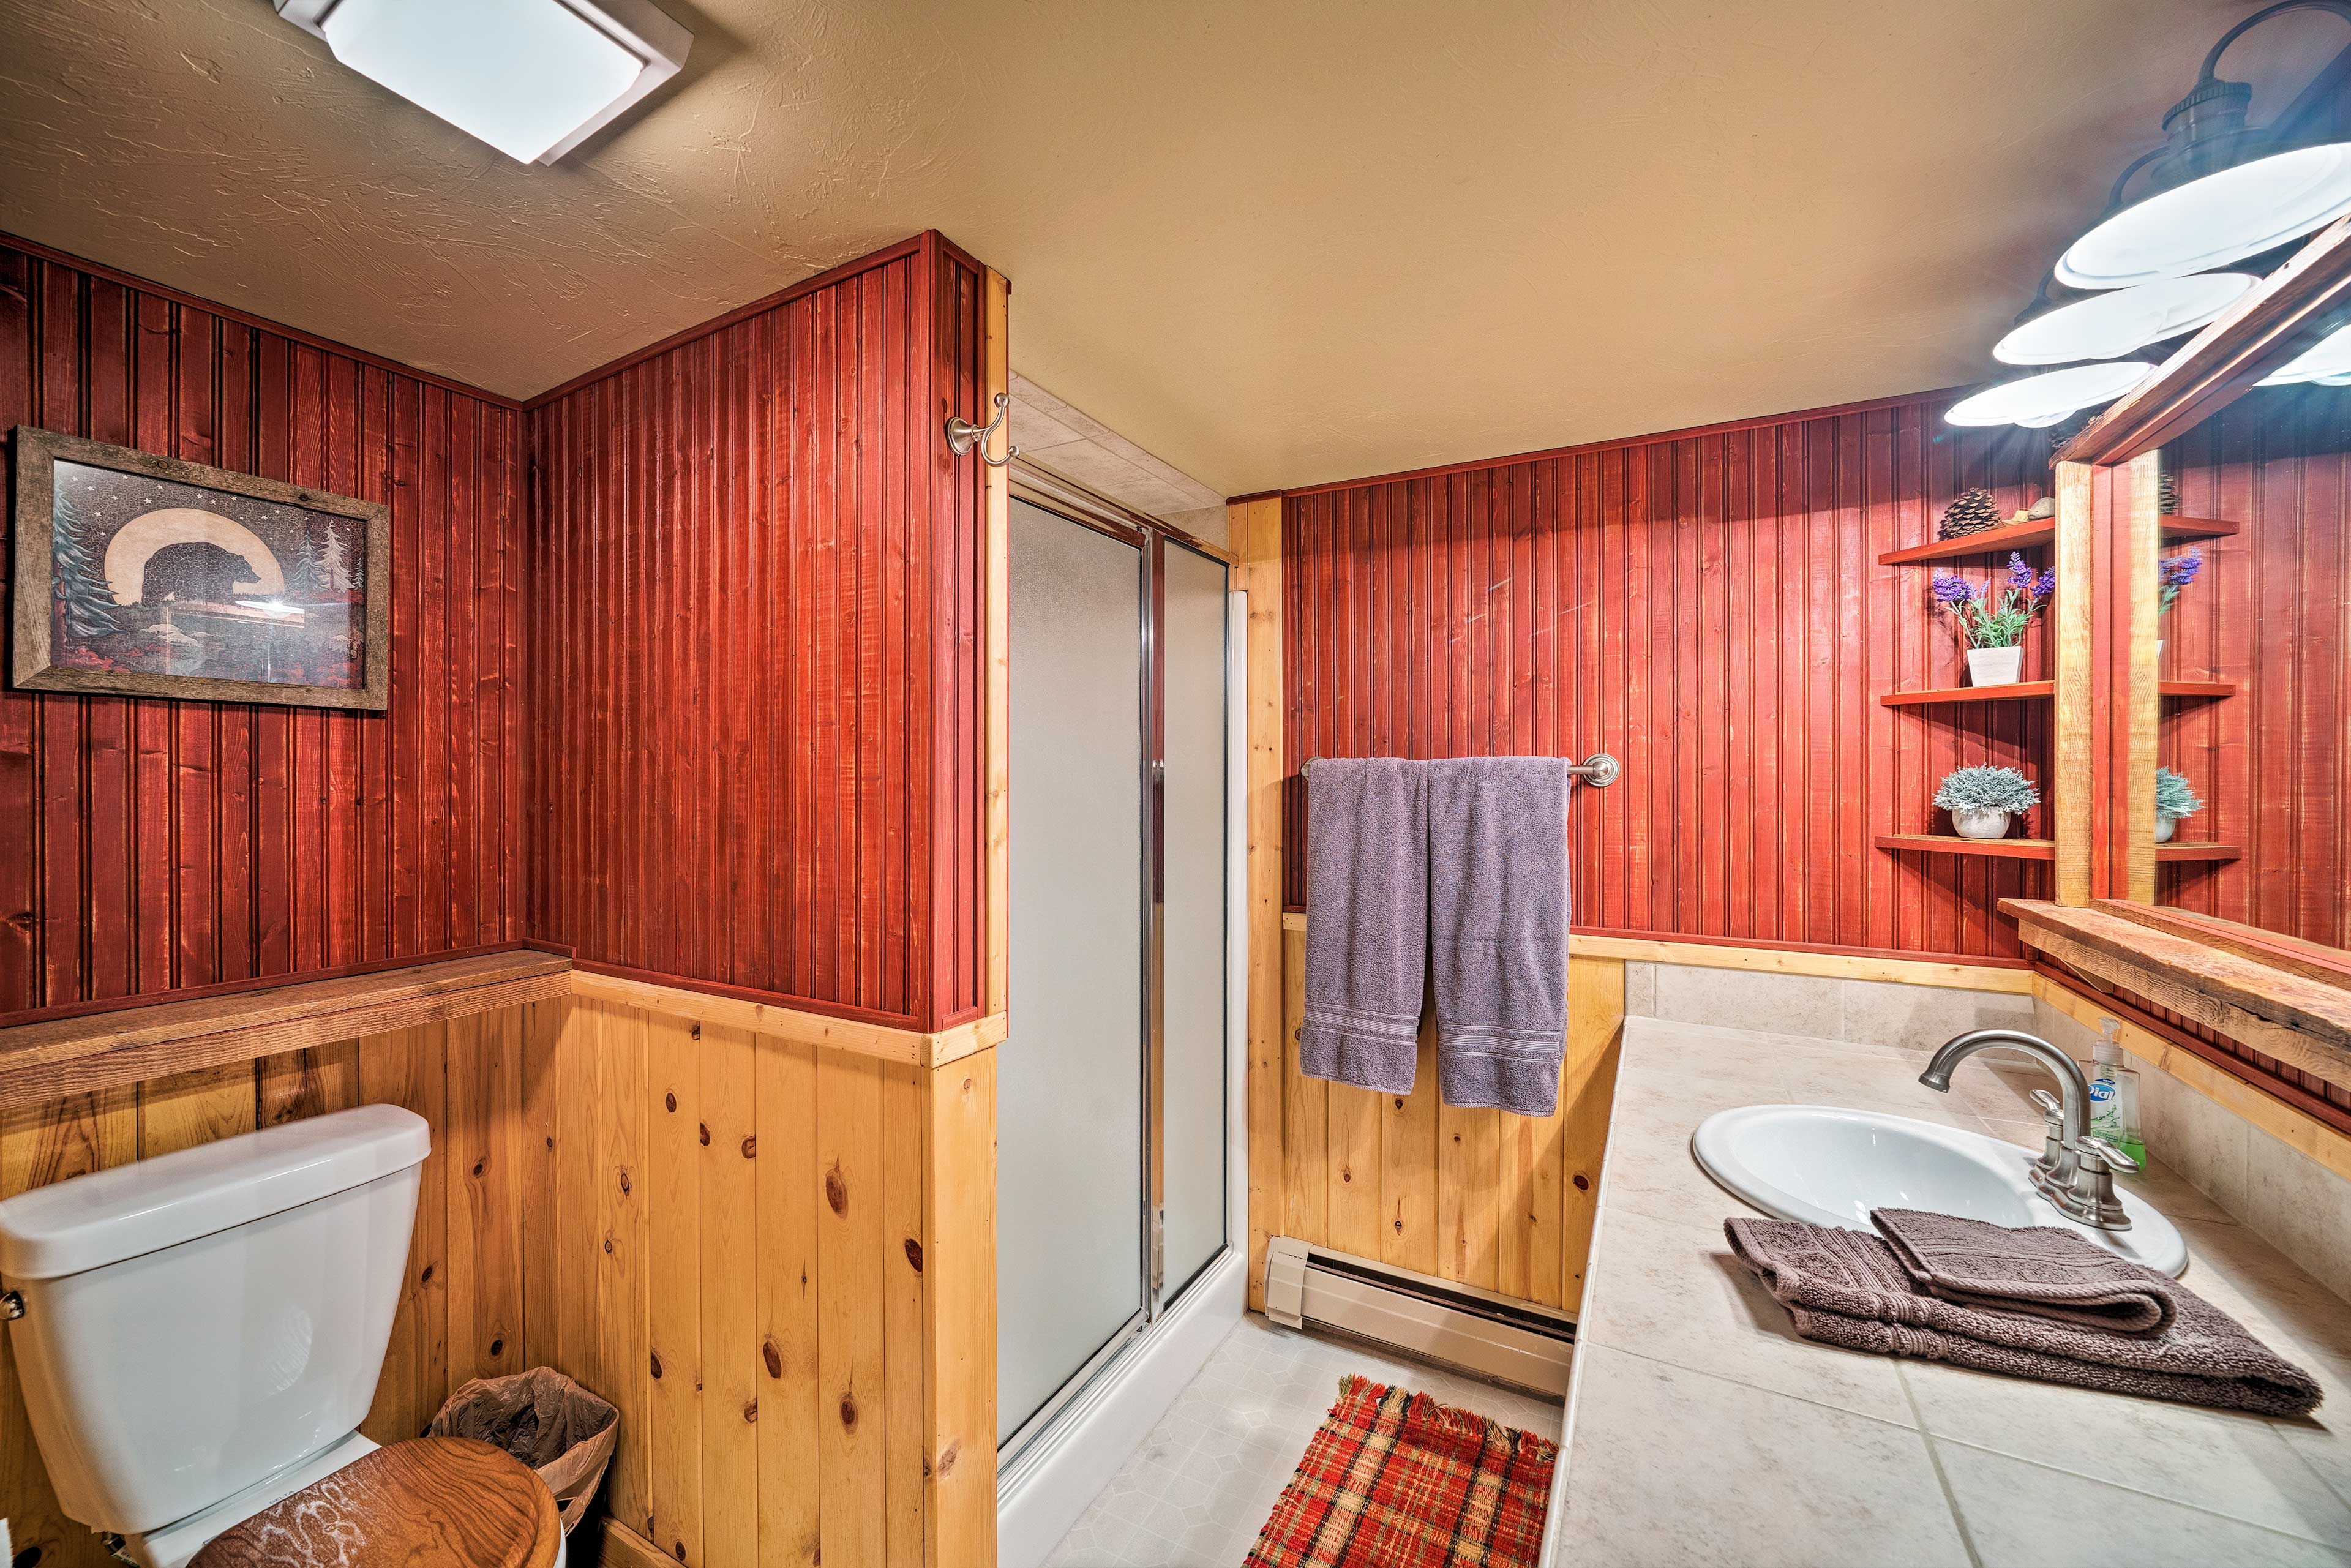 The room has an en-suite bathroom with a walk-in shower.